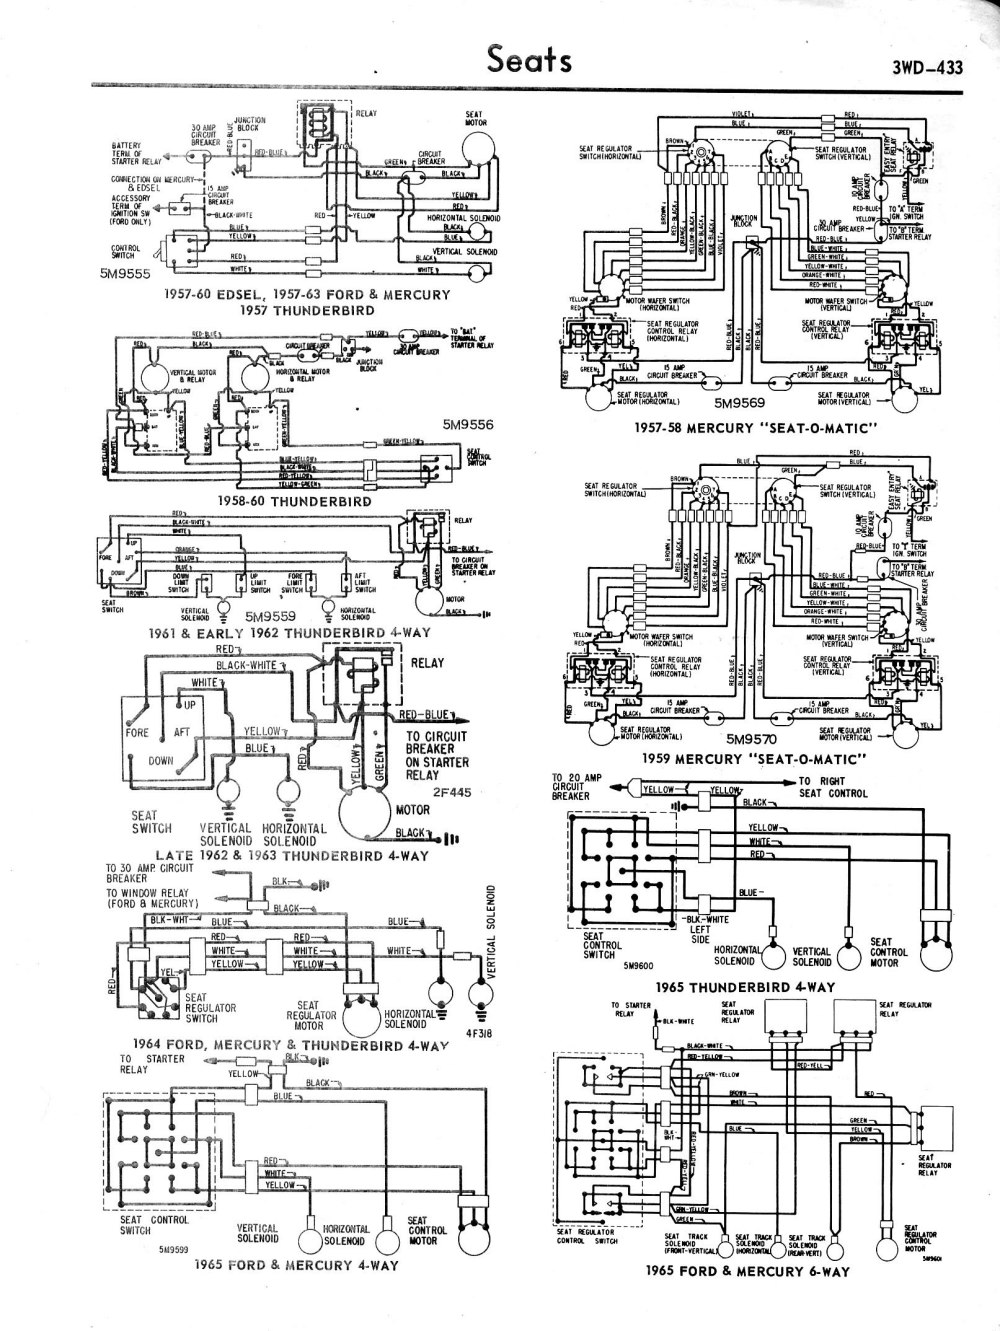 medium resolution of wiring diagram for 1963 ford thunderbird convertible top manual e book wiring diagram for 1963 ford